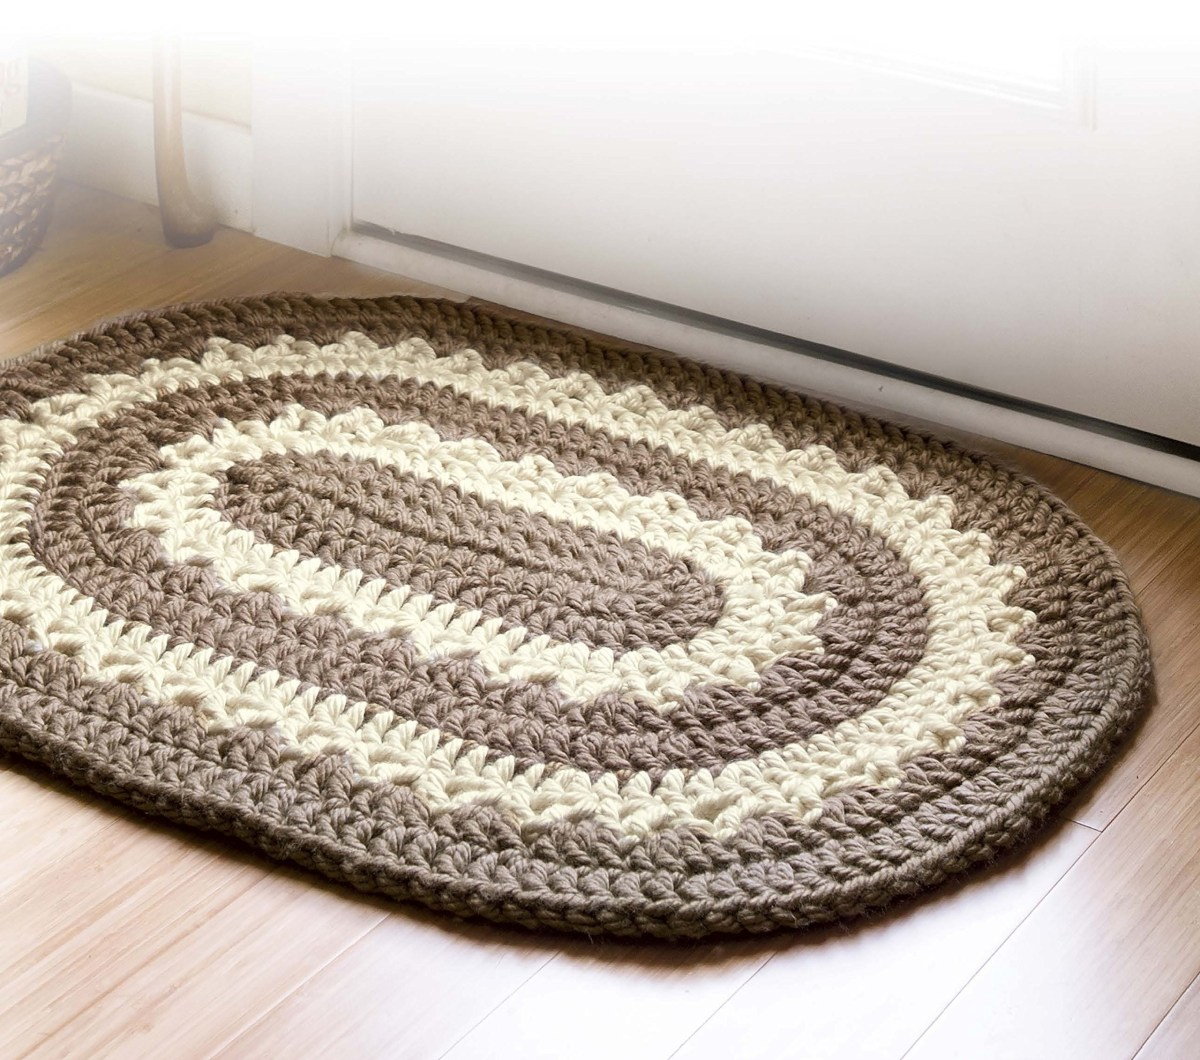 3 Motifs of Easy Crochet Oval Rug Pattern Crochet Rug Patterns 1000lives